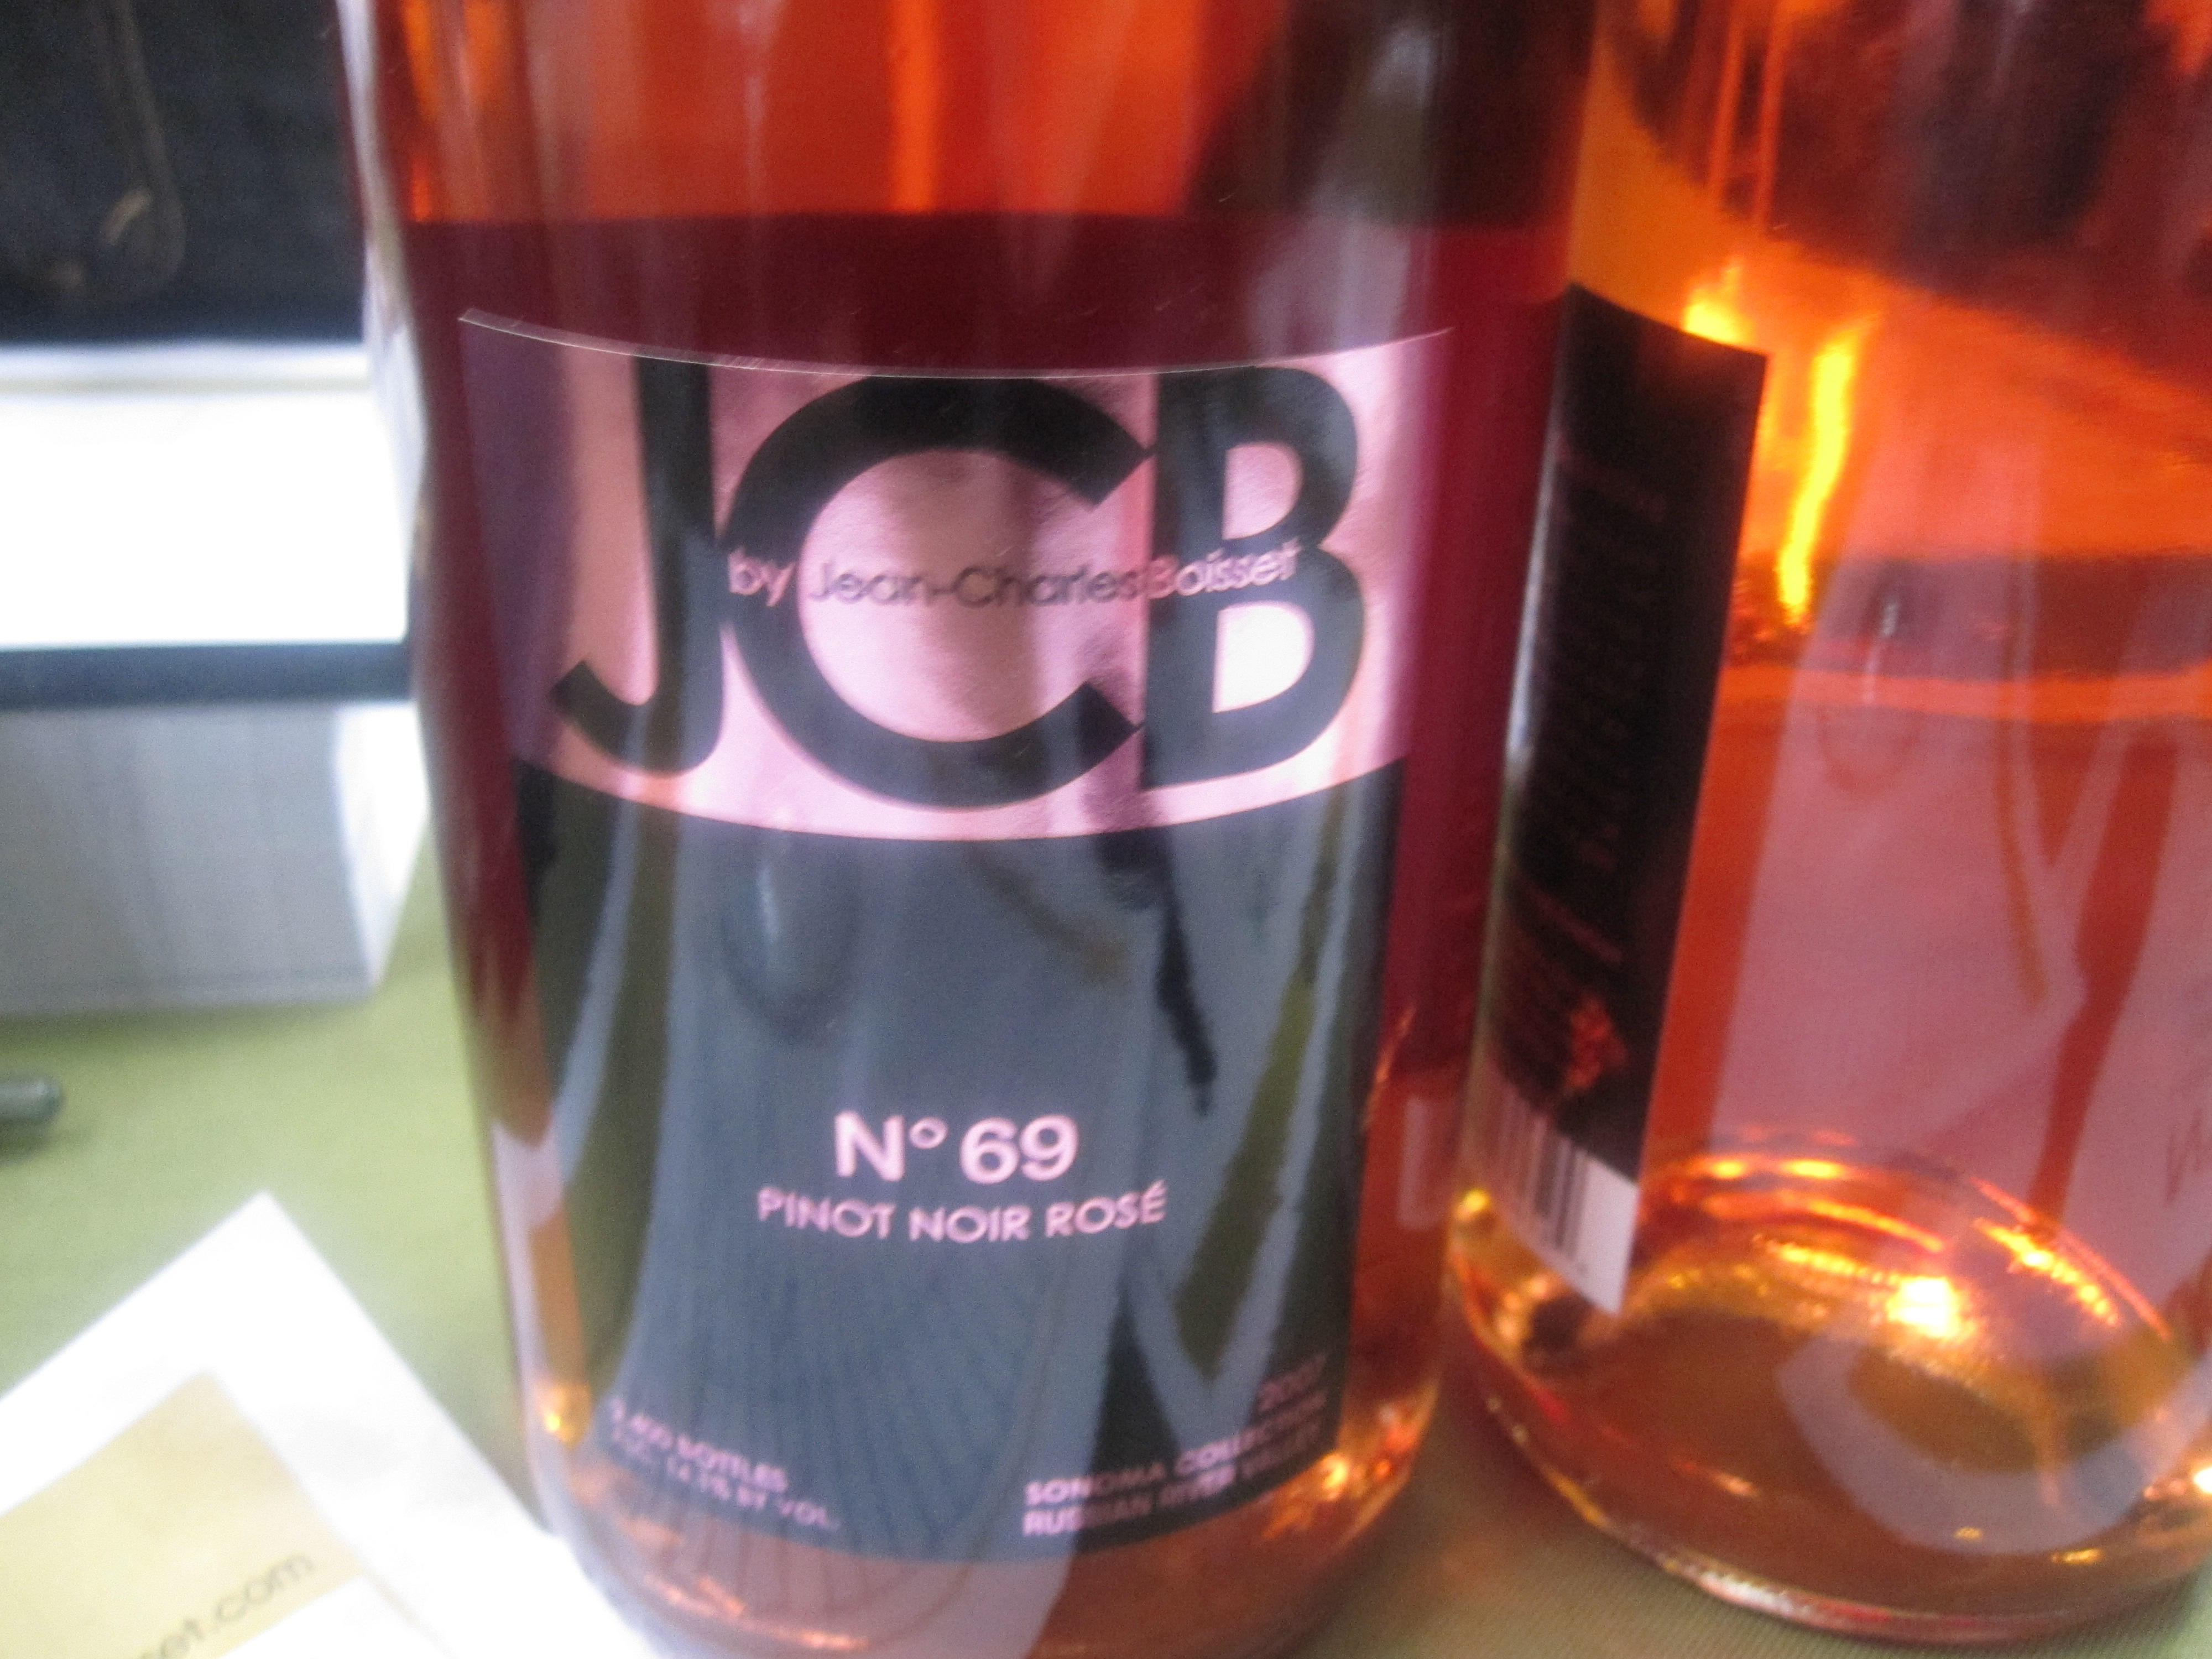 Another Rose worth seeking out is this one by Jean Charles Boisset.